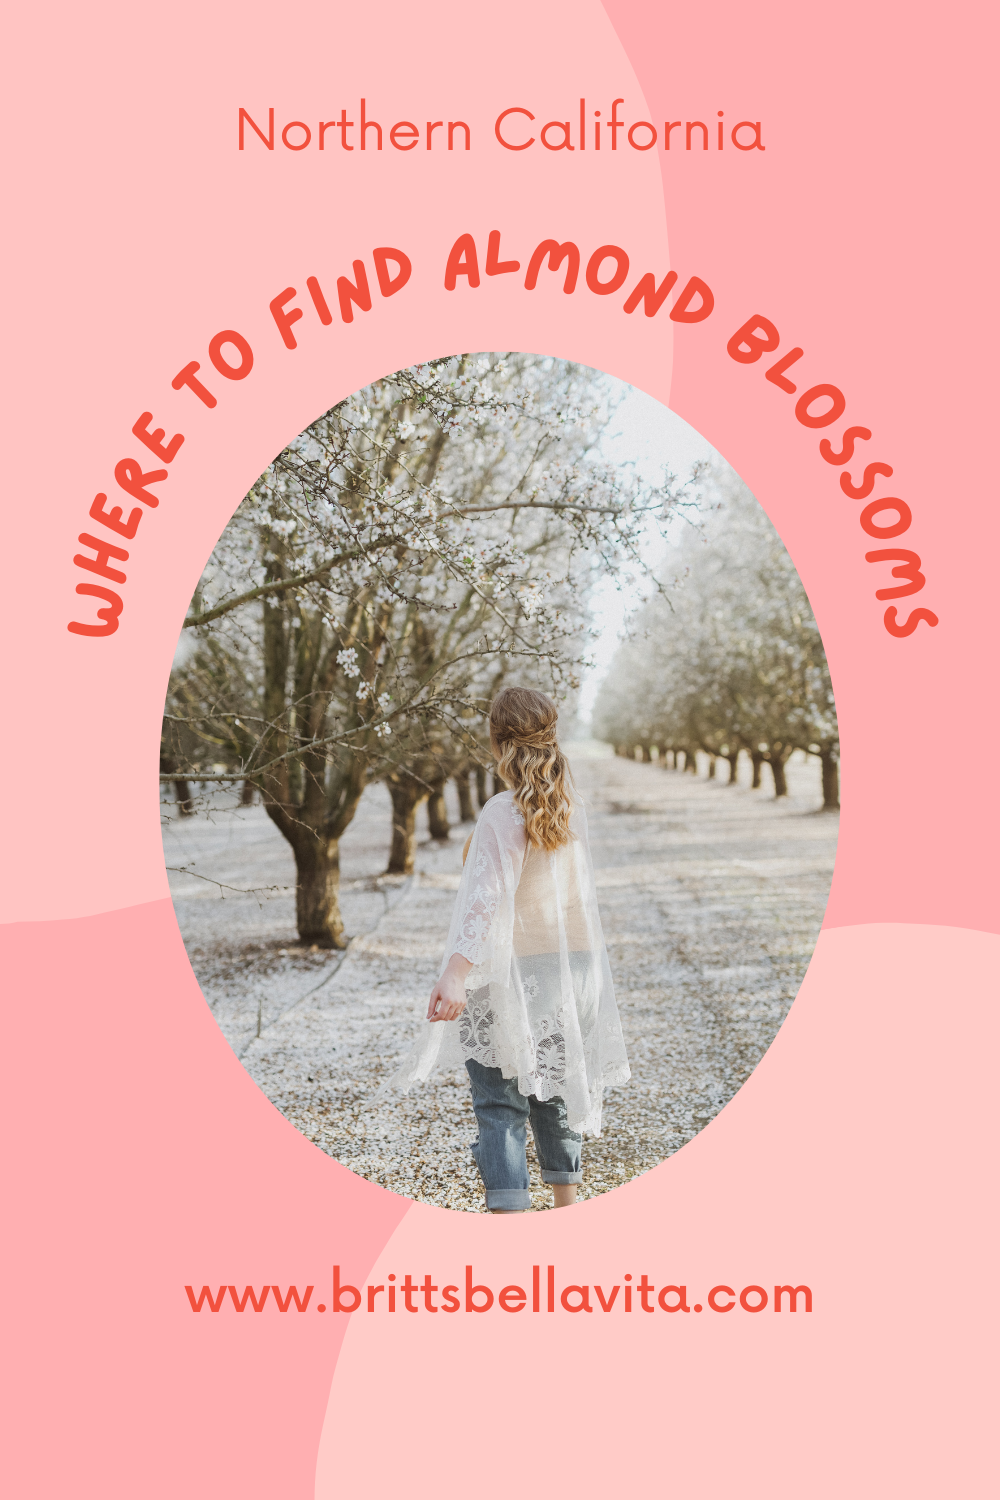 Almond Orchards in Woodland, California